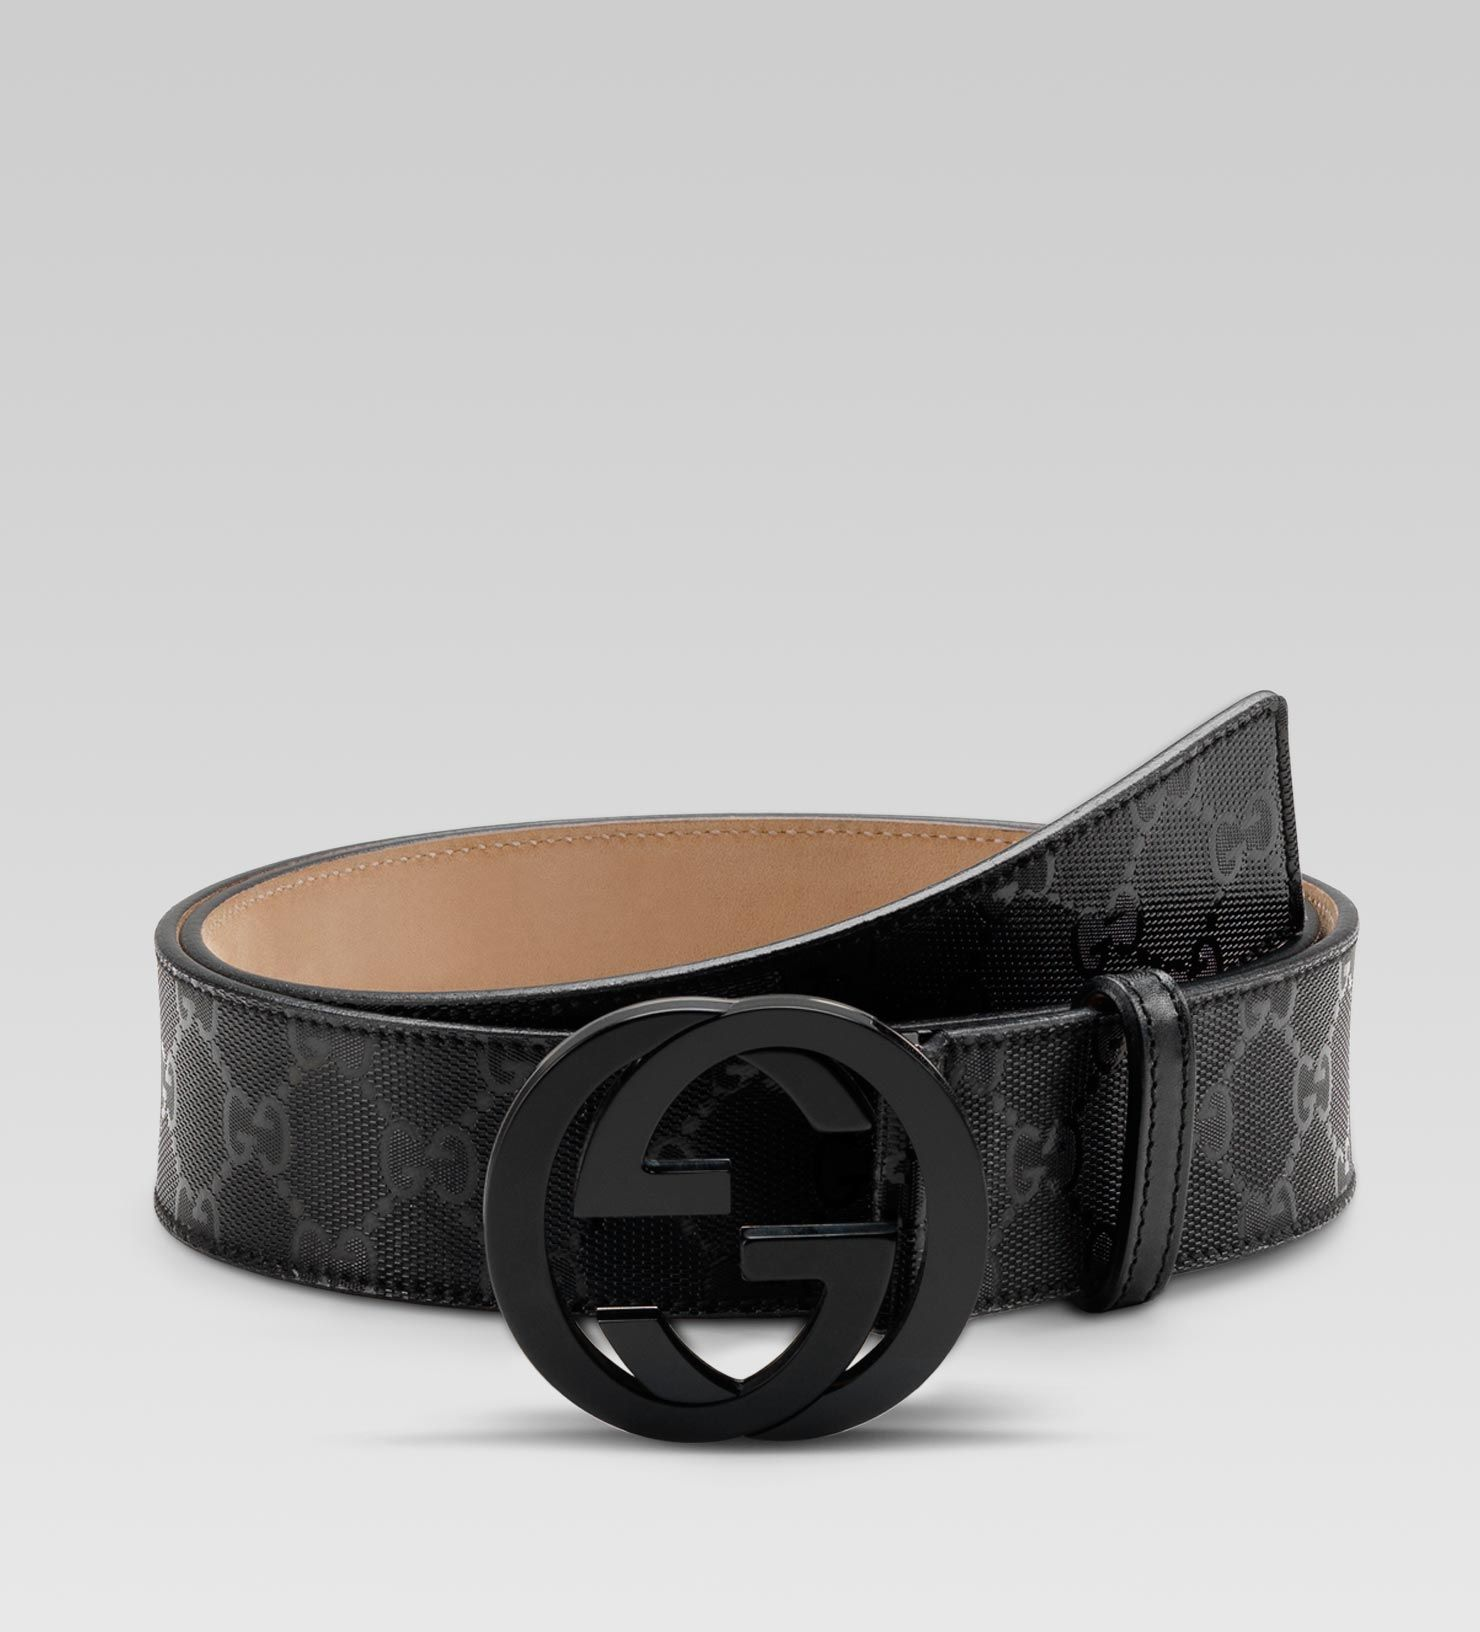 4ba50087e35 Gucci interlocking g belt black imprime